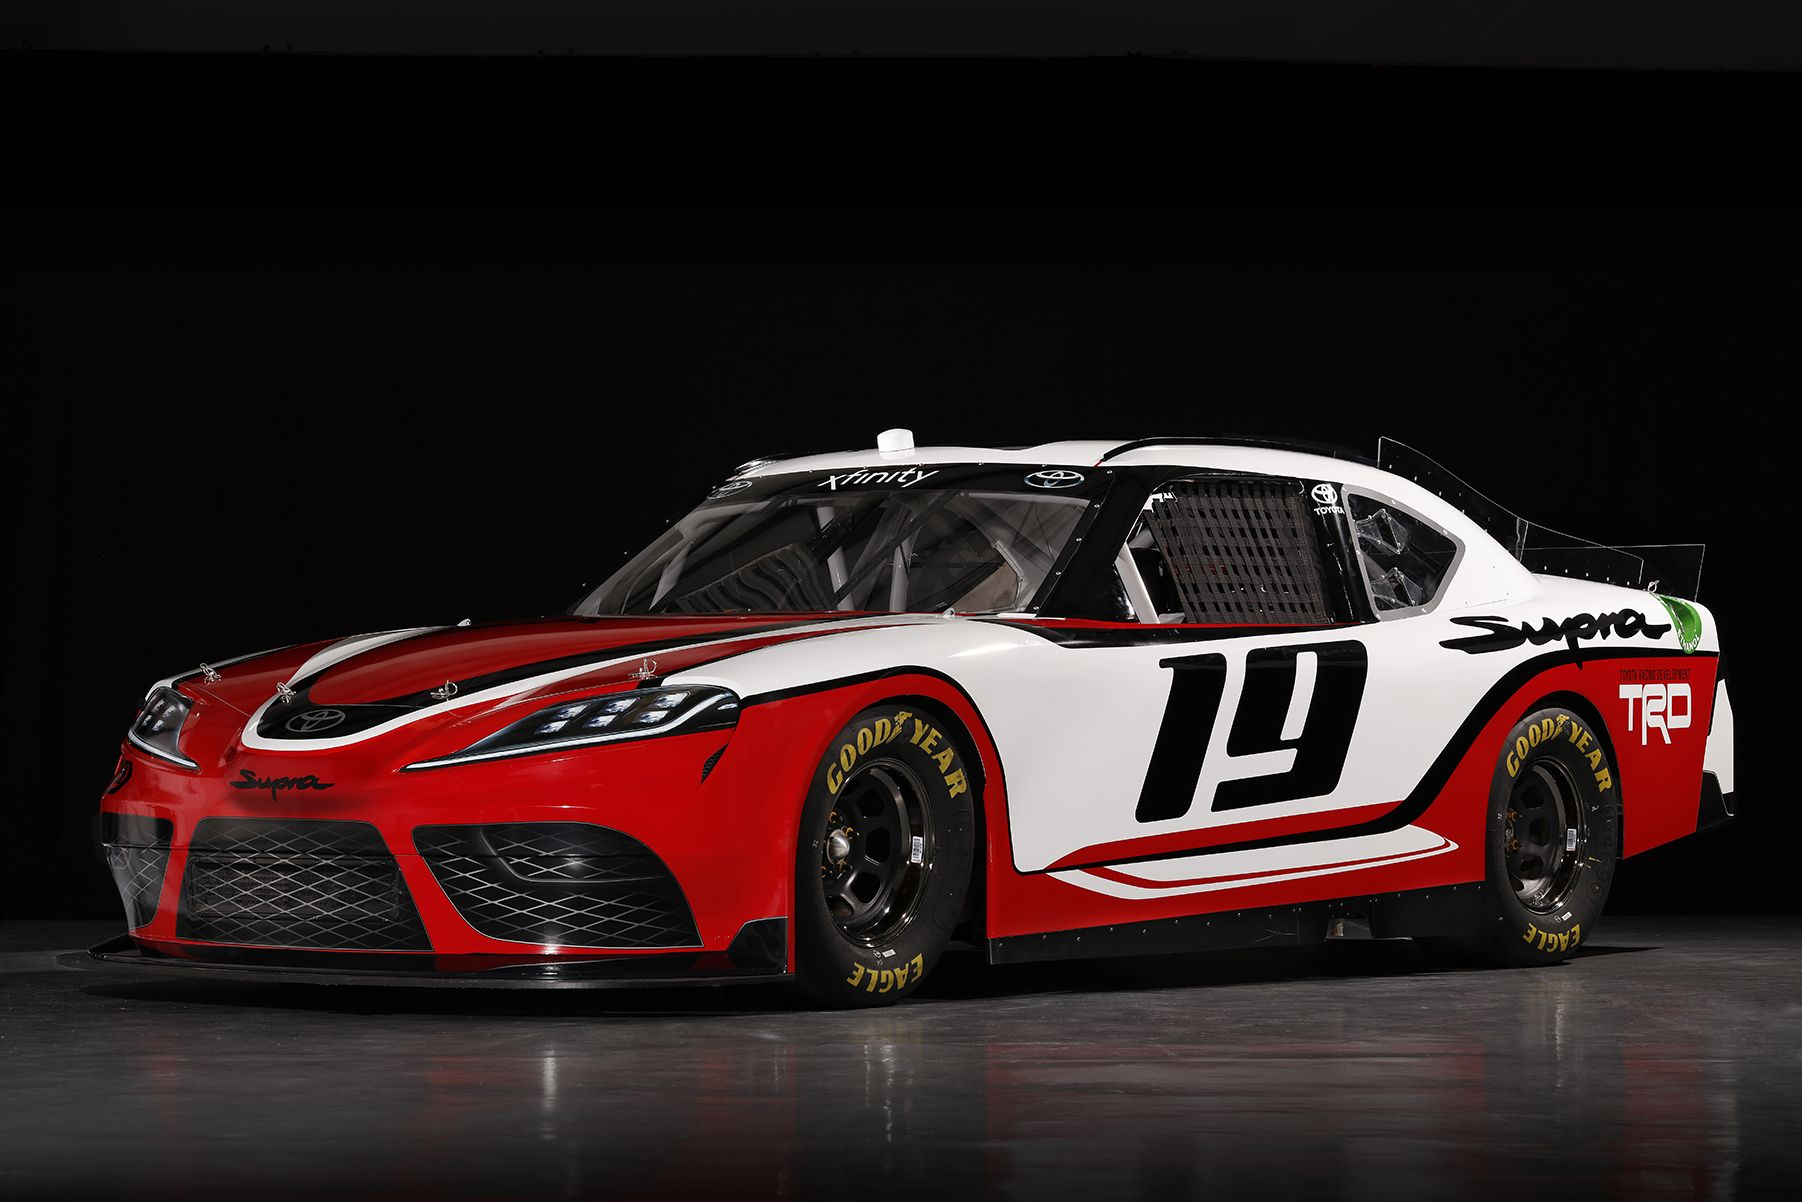 Toyota Supra Racing In Nascar Xfinity Series In 2019 With Images